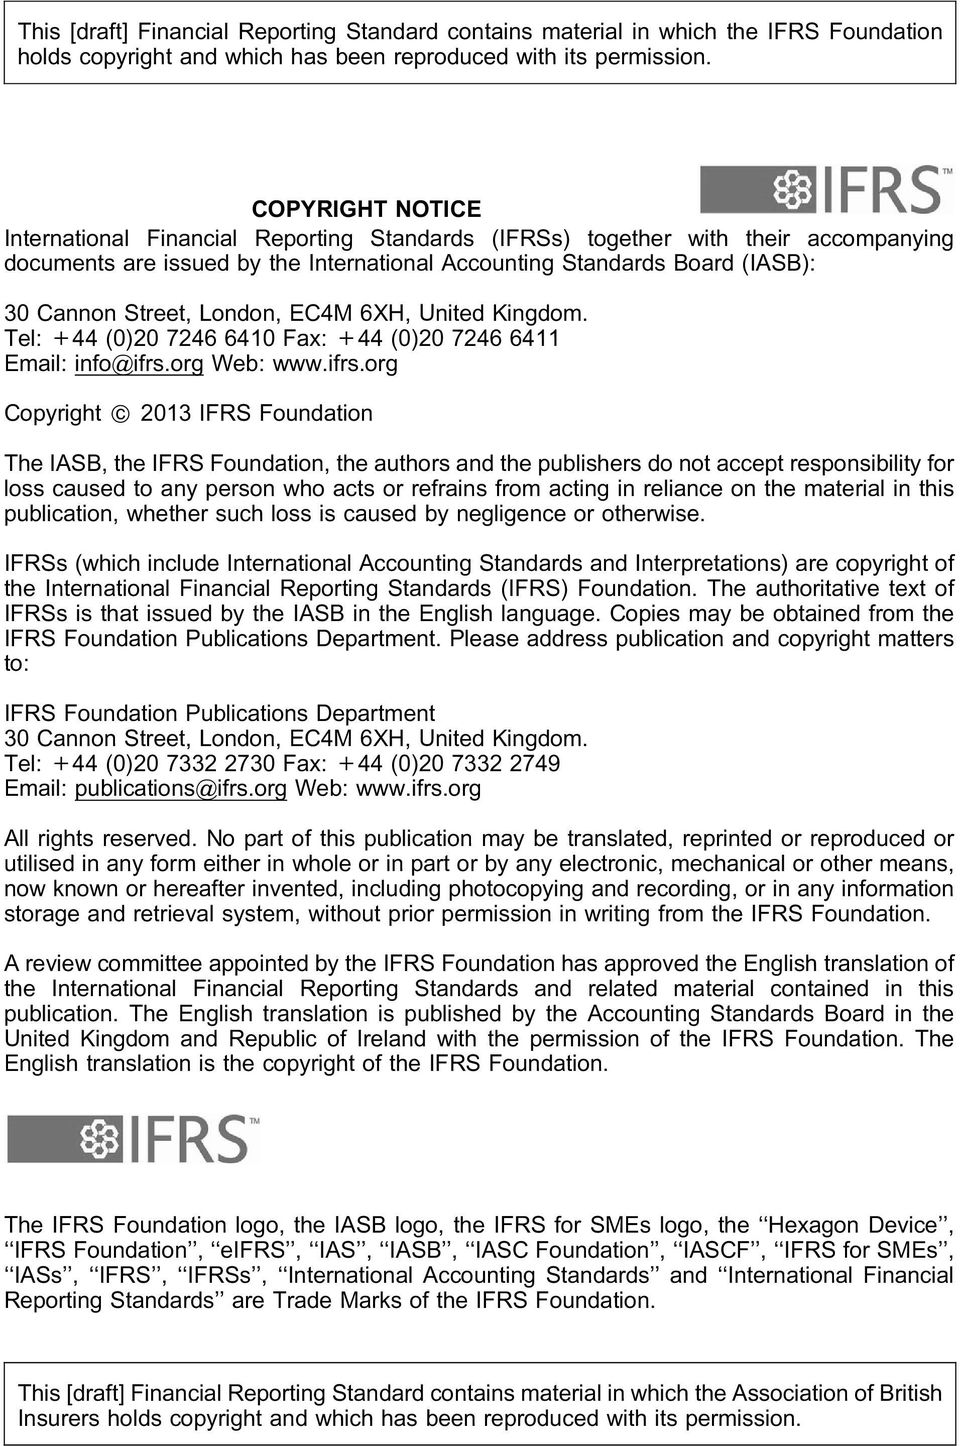 FRED 49 Draft FRS 103 Insurance Contracts - PDF